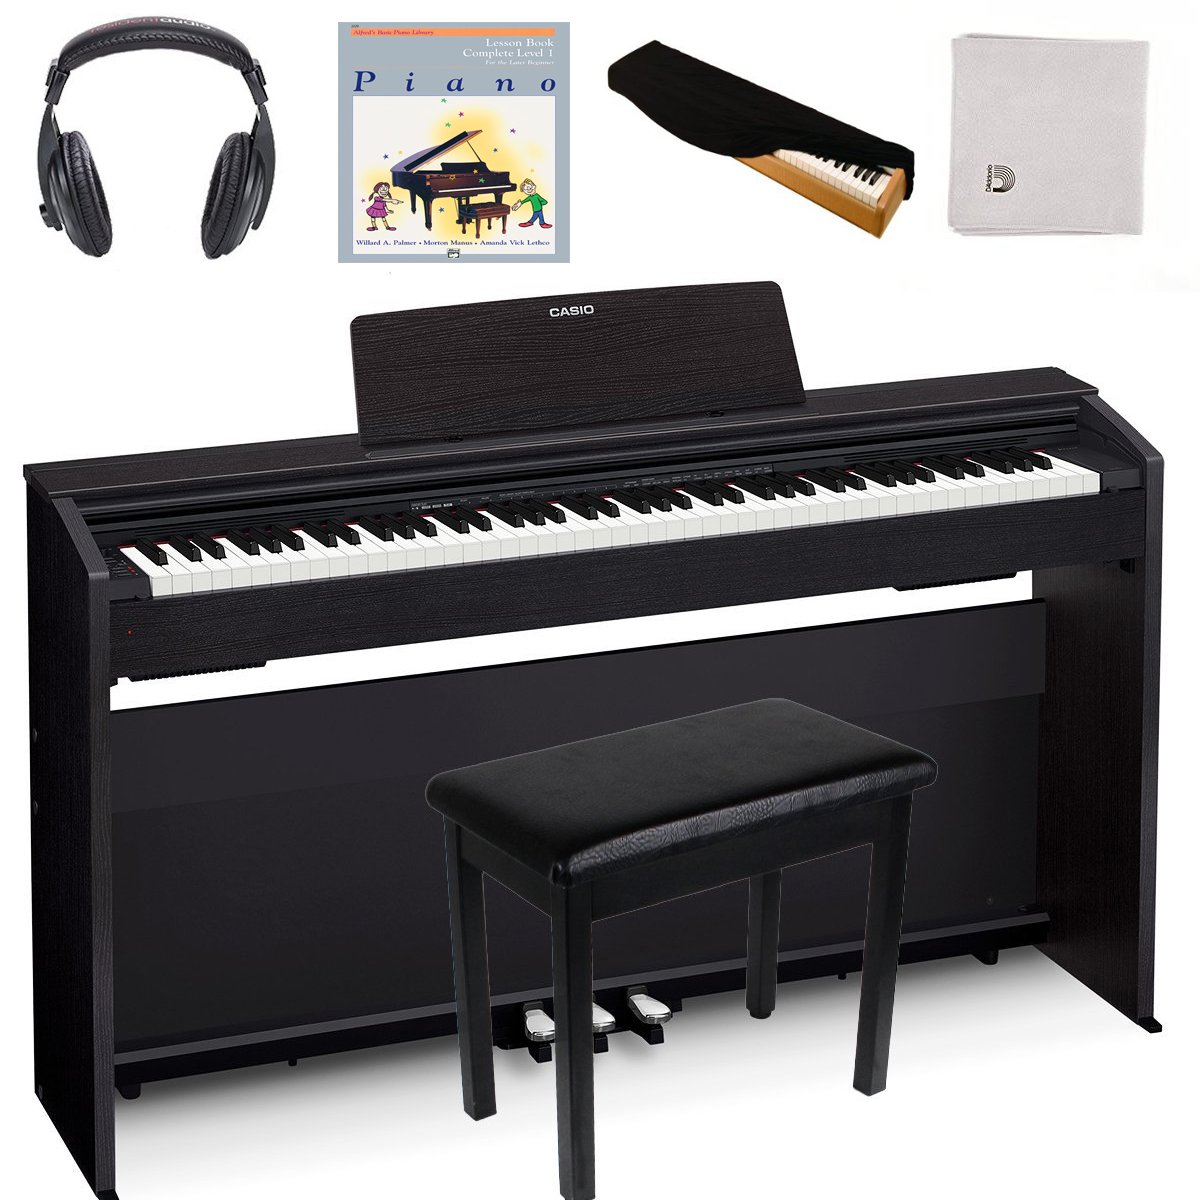 Casio PX870 Black | Super Bundle | Includes Headphones + Piano Bench + Polishing Cloth + Piano Dust Cover + Lesson Book by Casio PX870